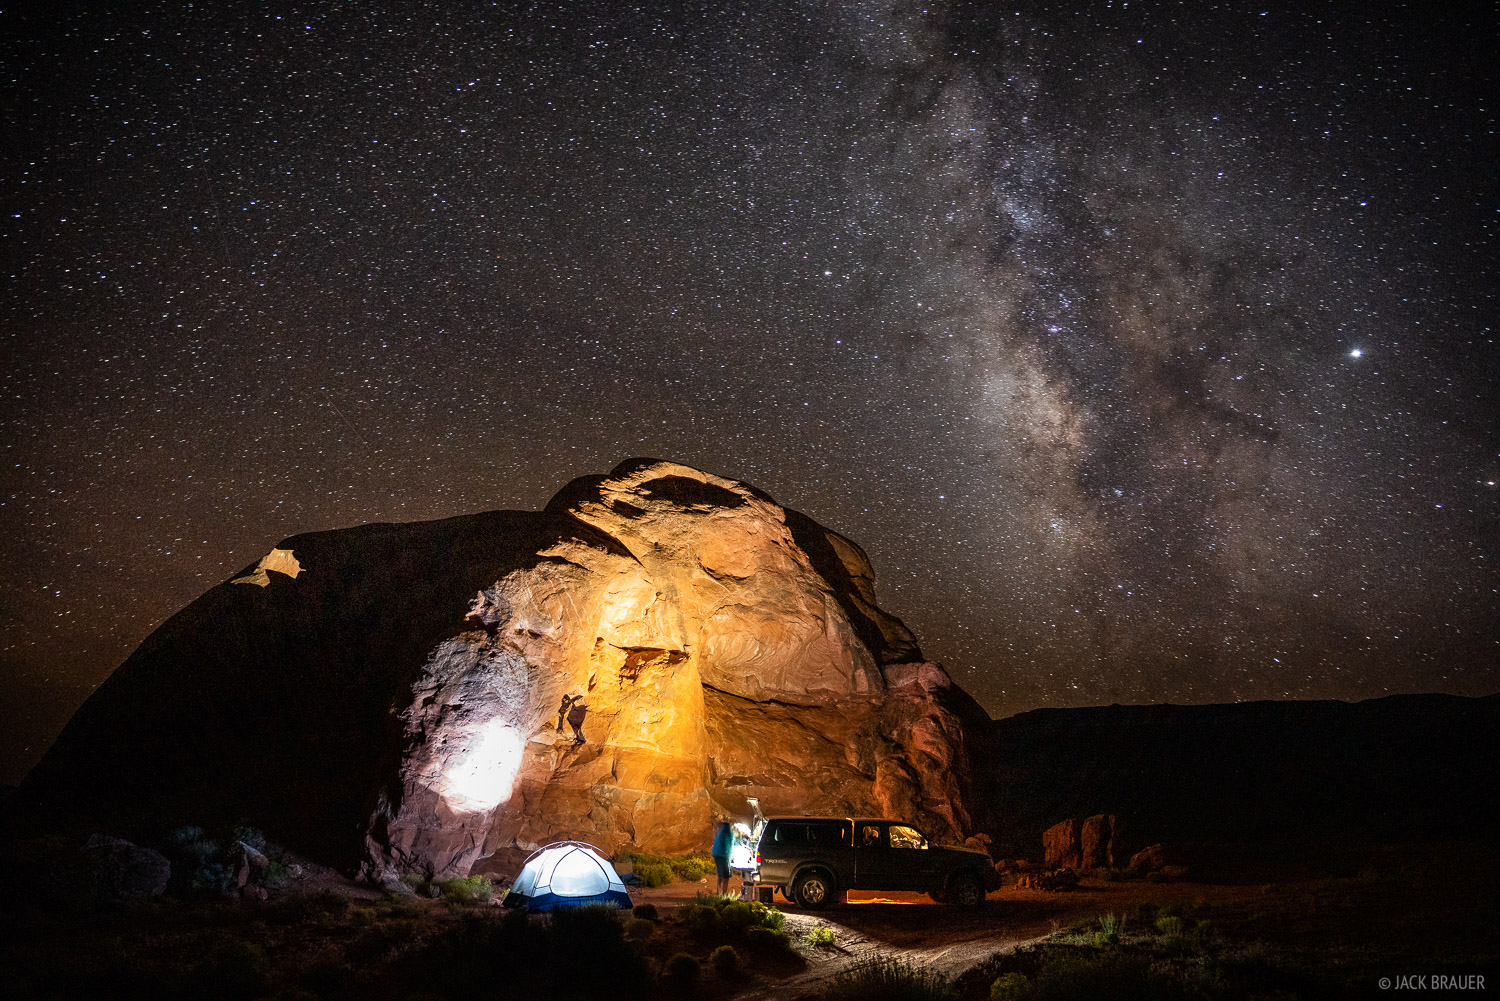 Grand Staircase - Escalante National Monument, Utah, camping, stars, truck, Escalante, photo